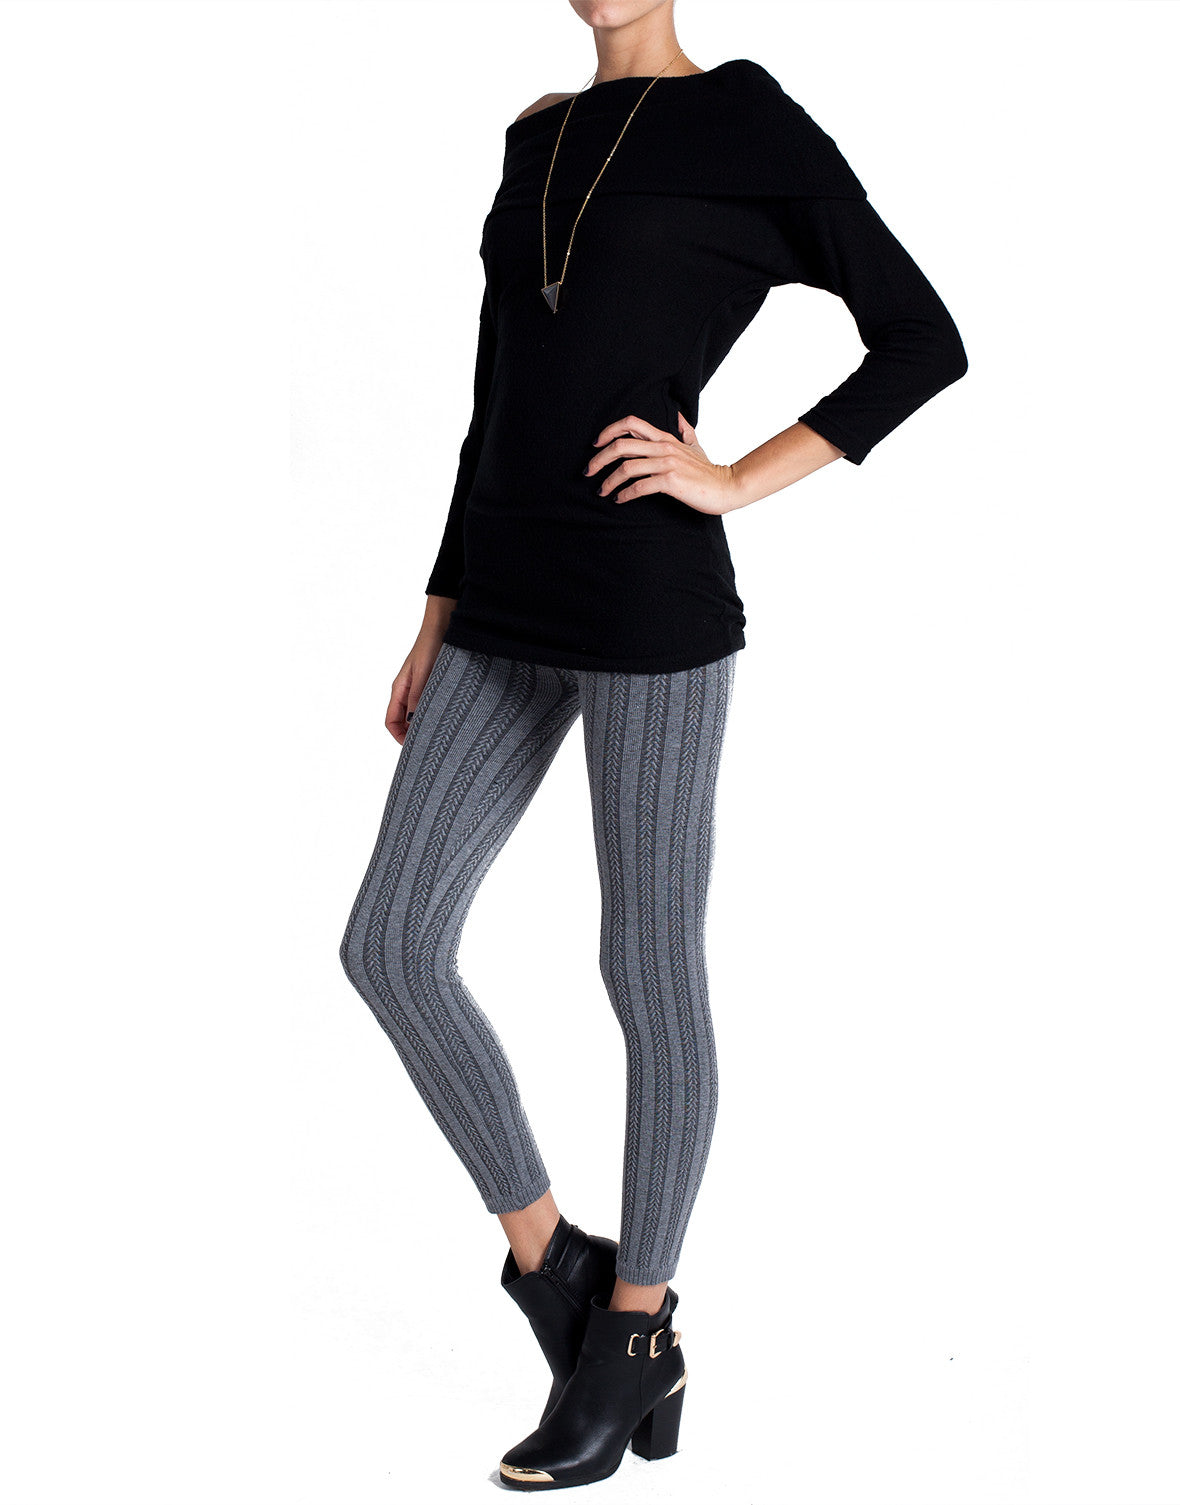 Vertical Striped Pattern Leggings - Gray